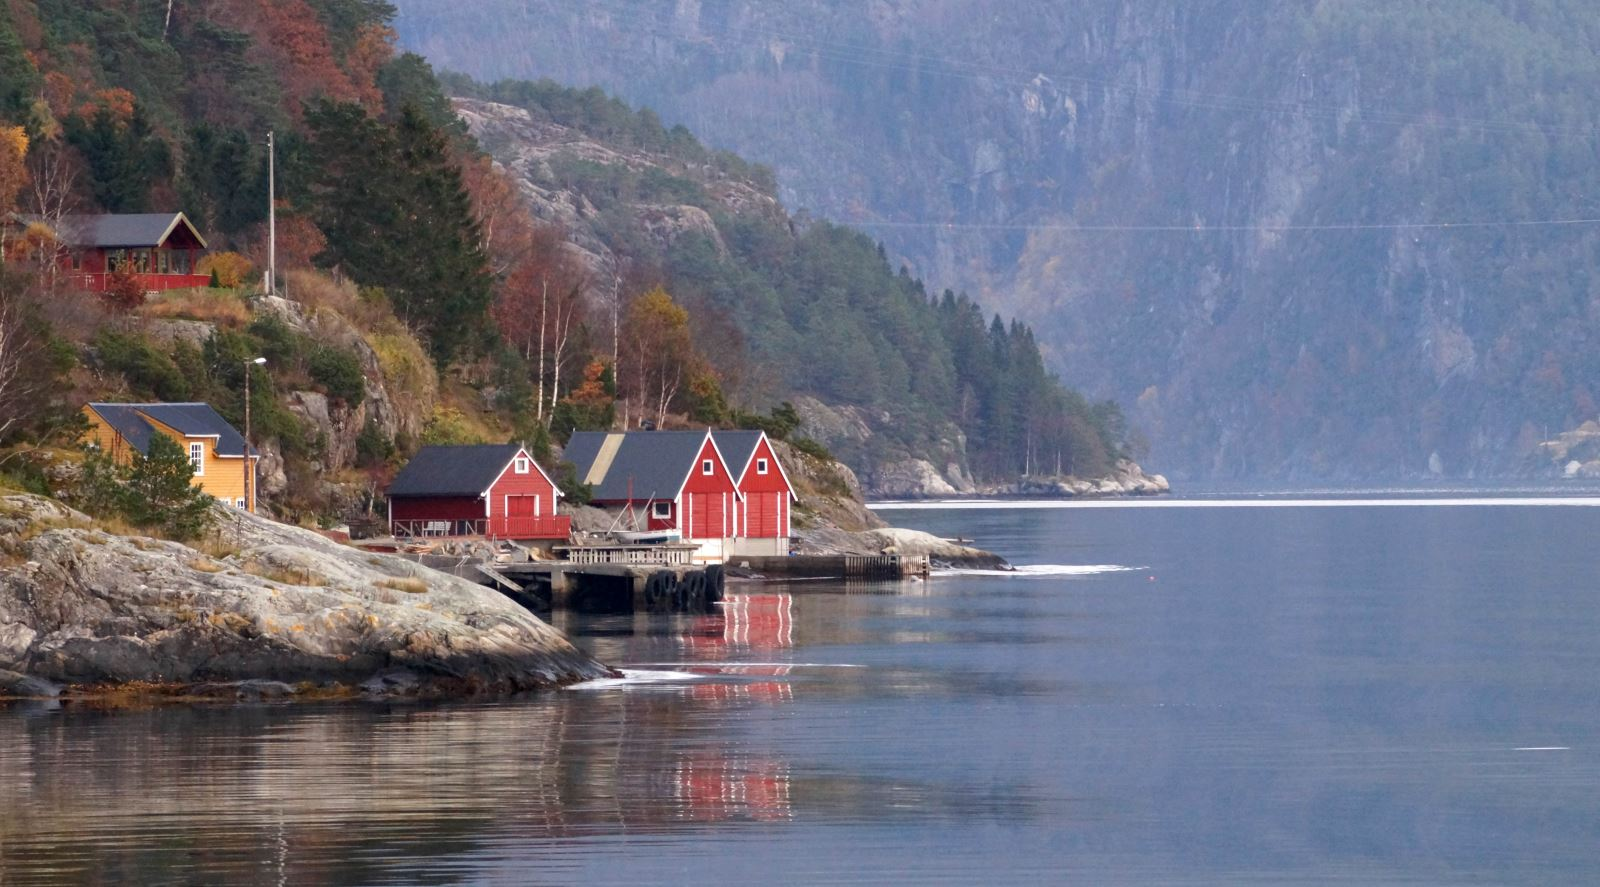 fjord tours from bergen during winter season   visit bergen